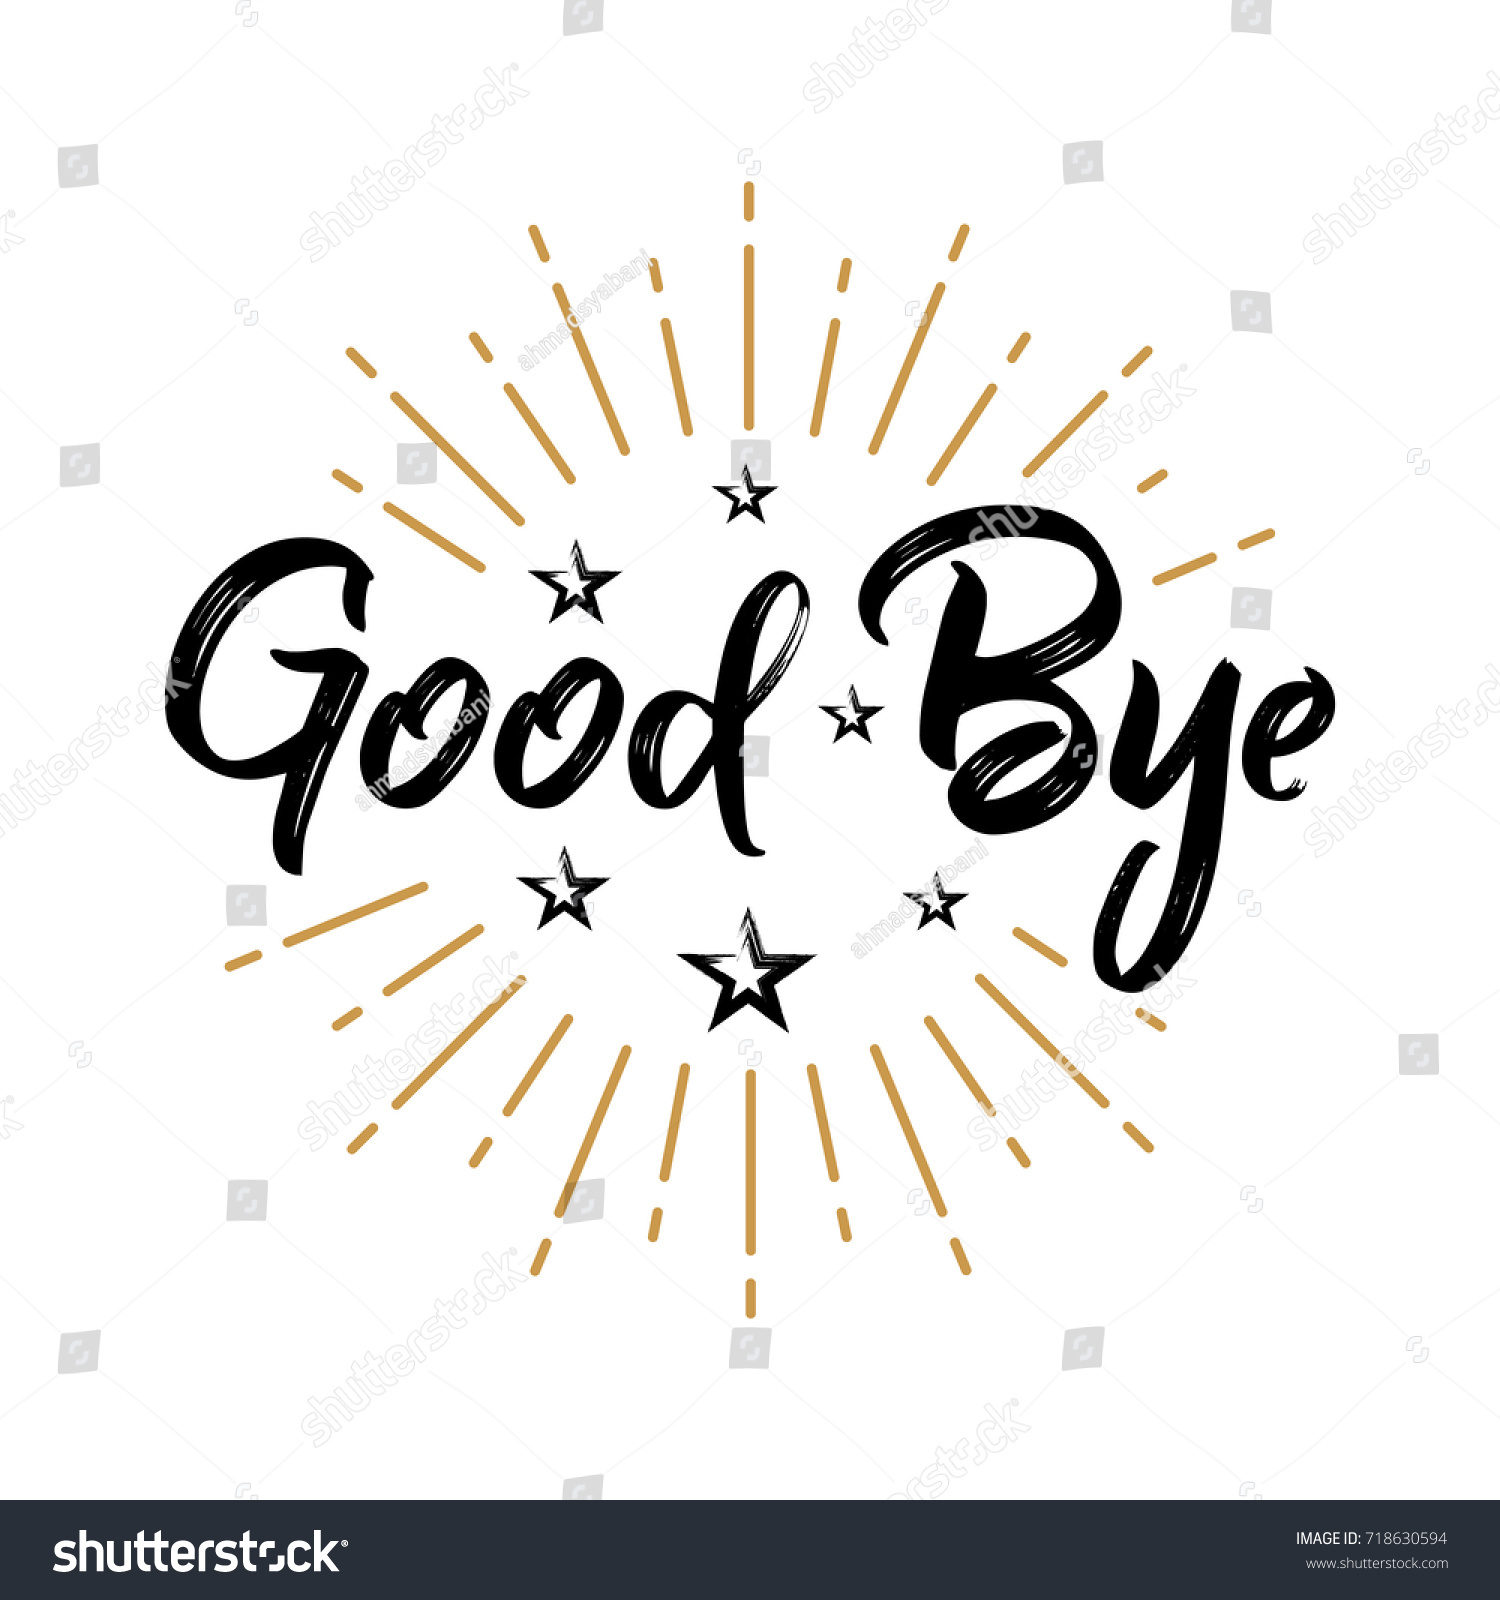 Good bye fireworks message quote sign stock vector 718630594 good bye fireworks message quote sign lettering handwritten vector kristyandbryce Image collections